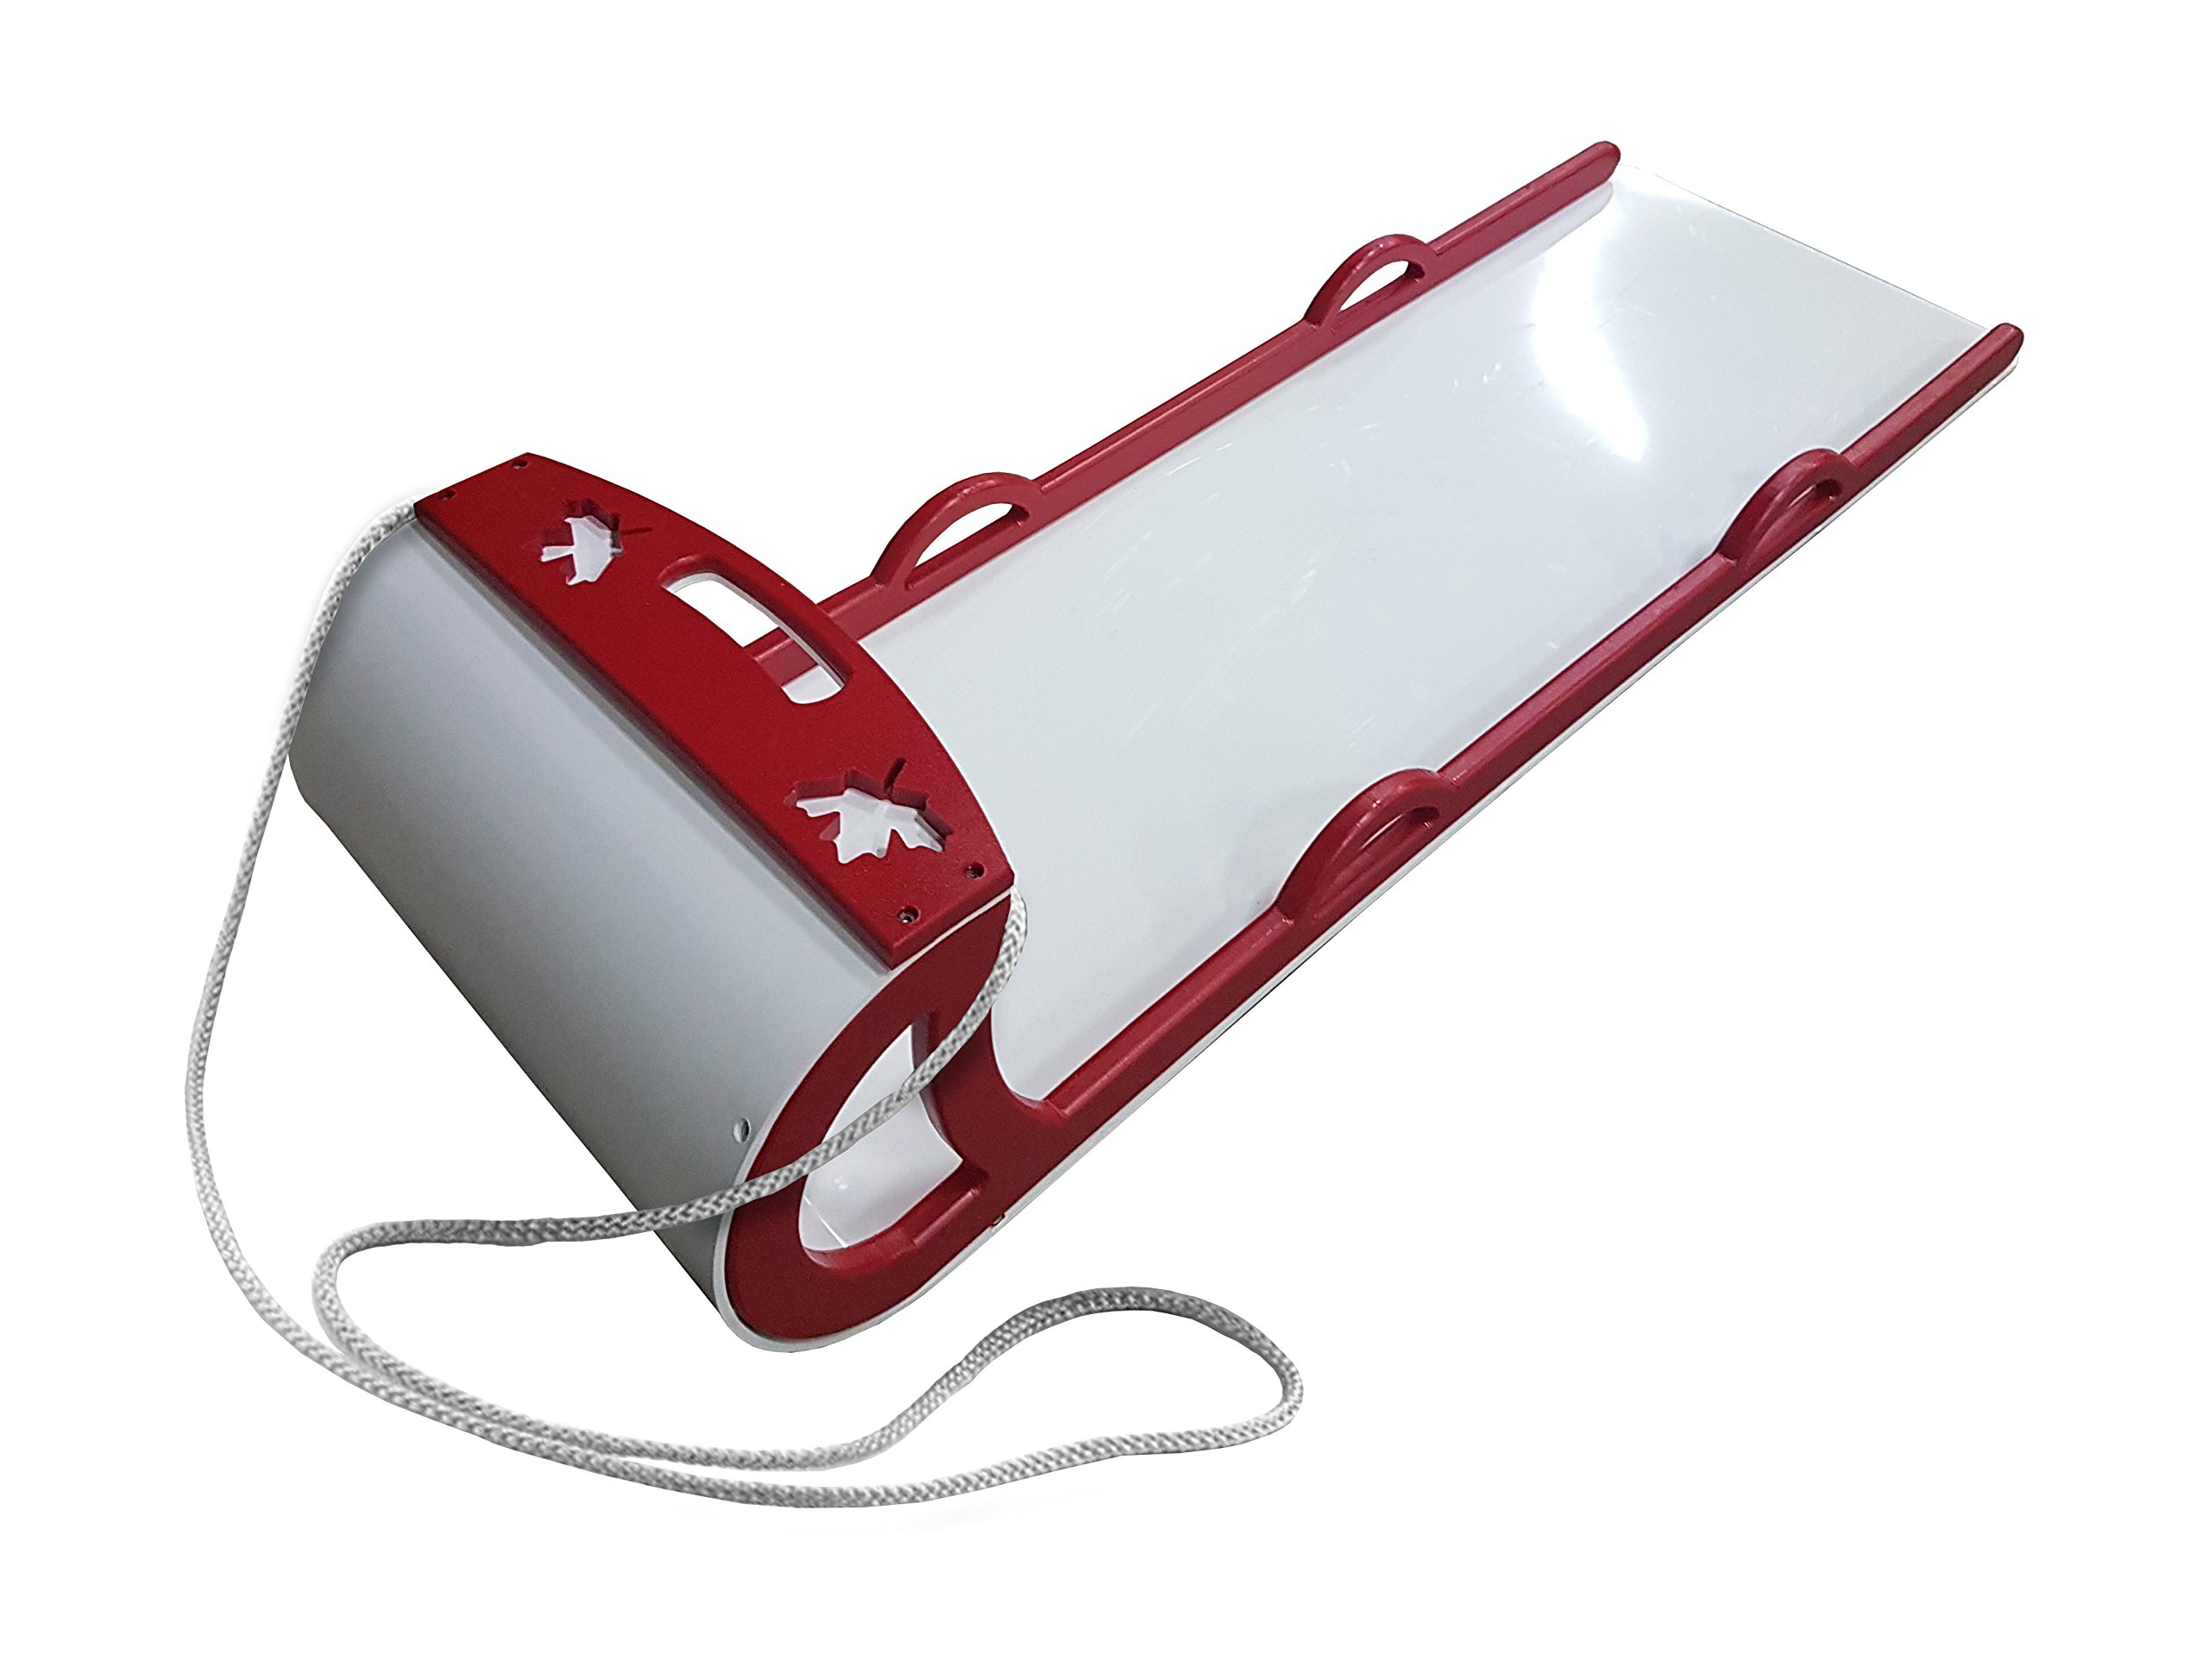 5' Toboggan Red - Recycled Plastic by BeaverSNOW